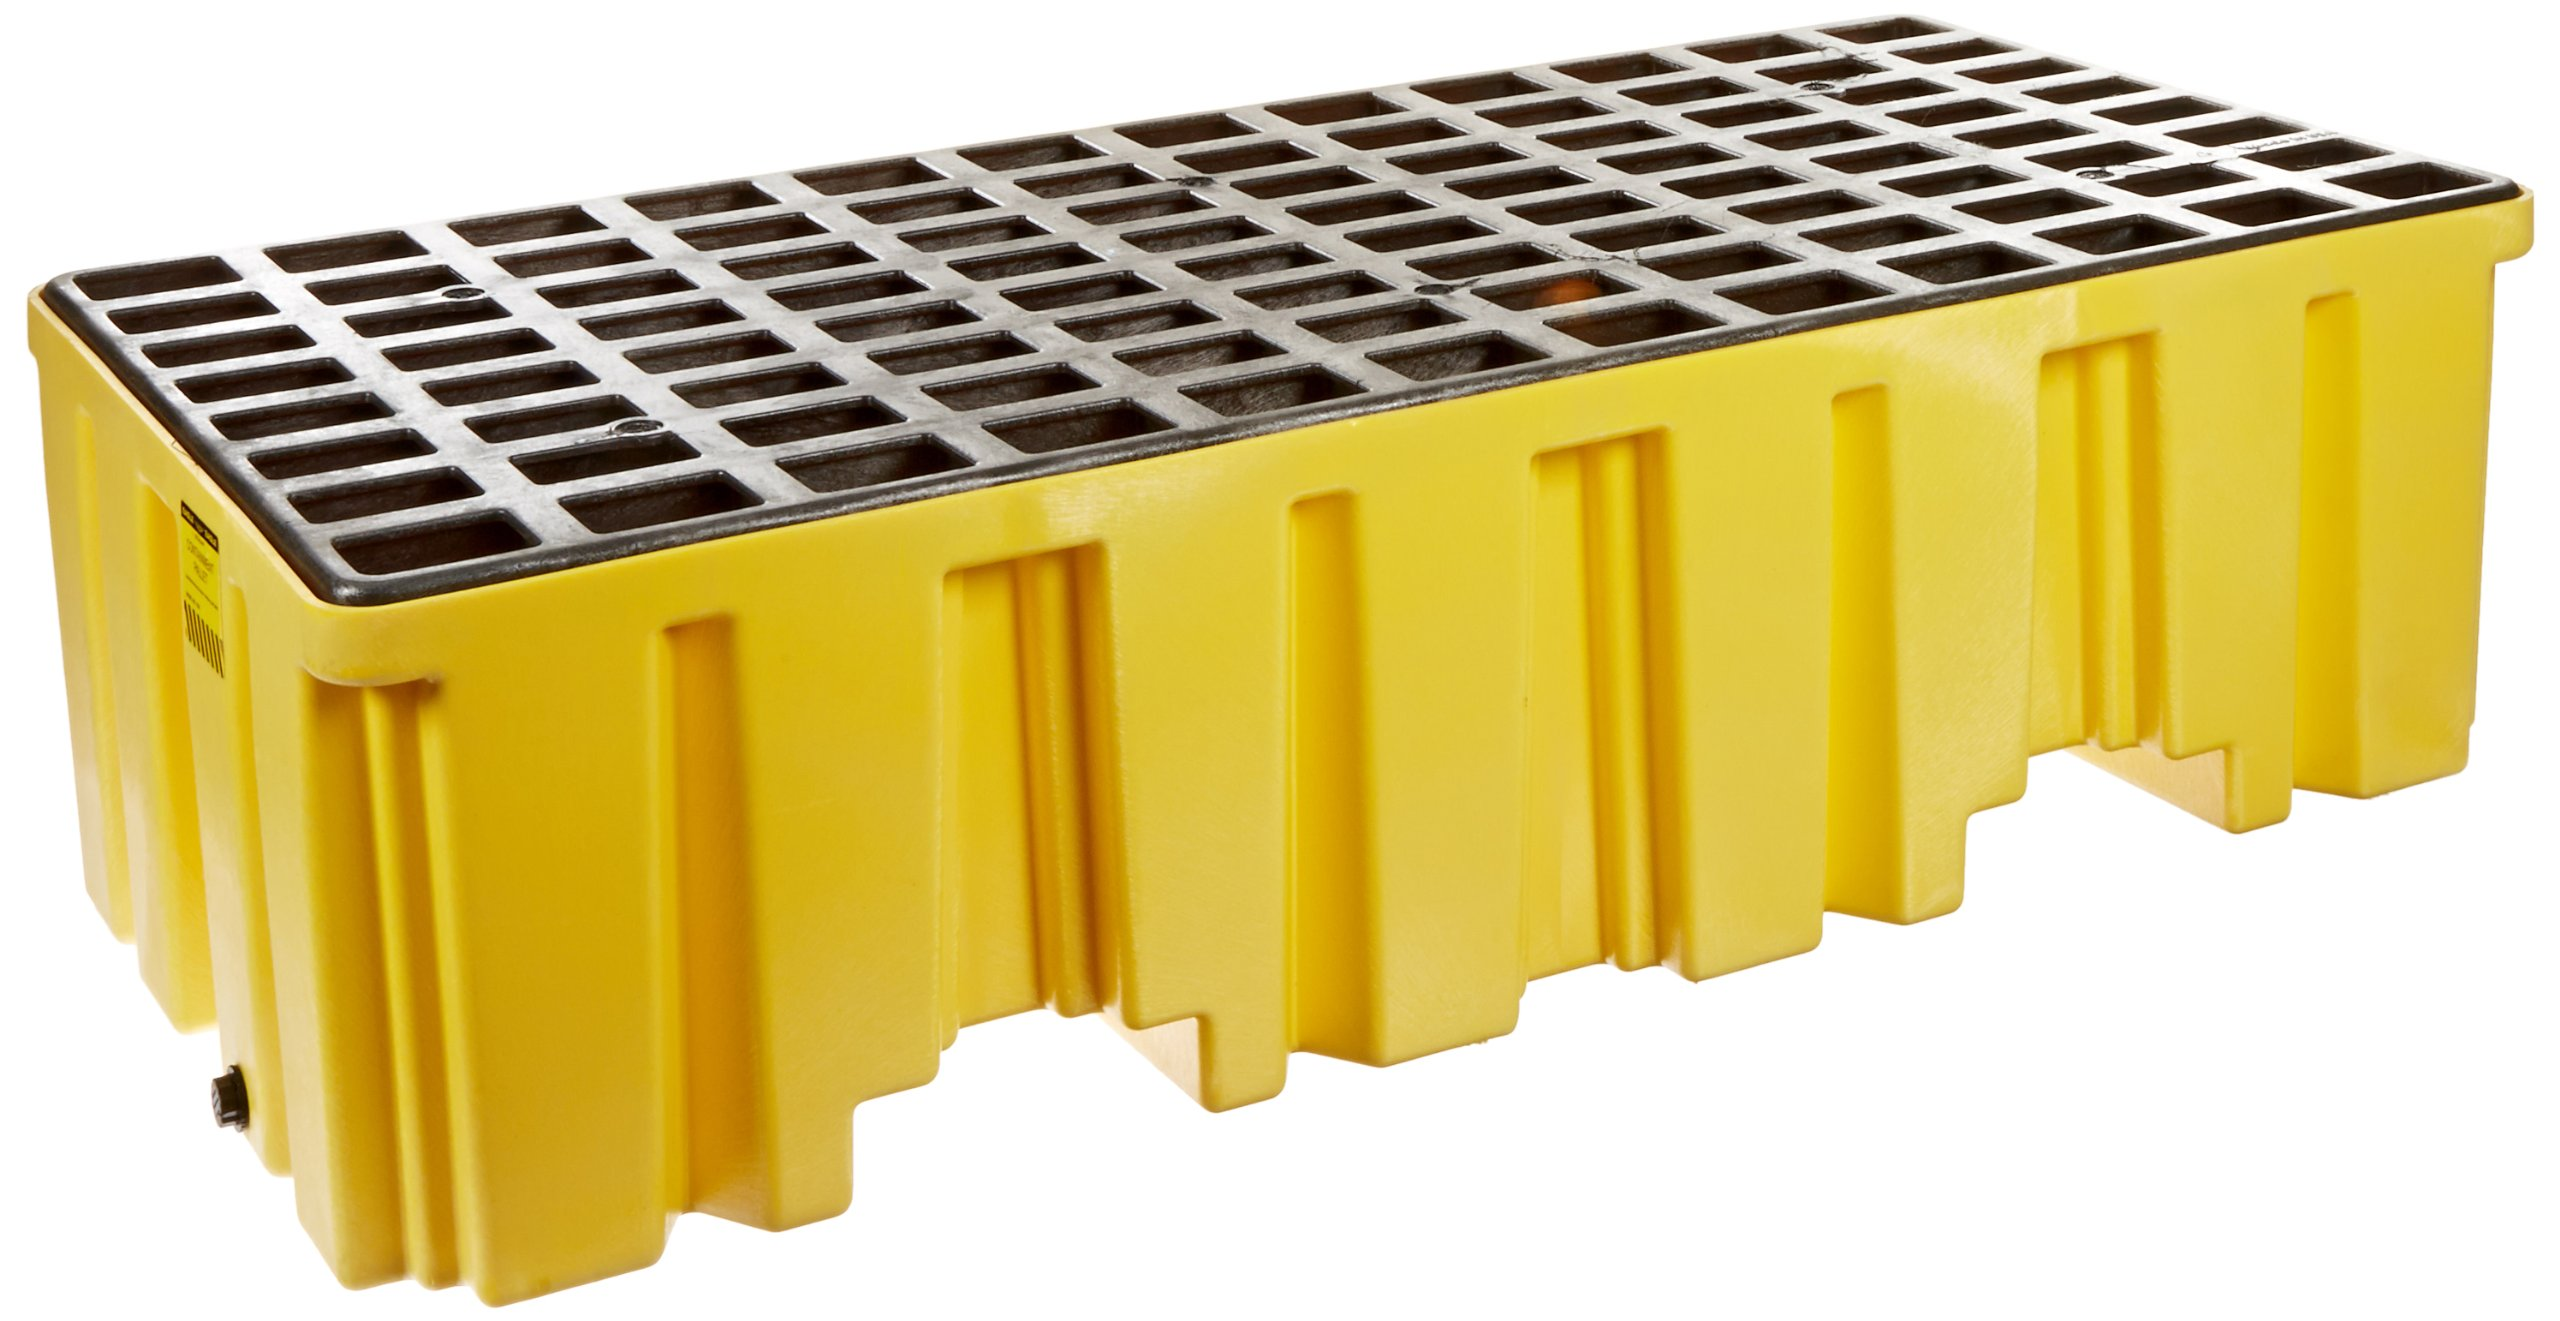 Eagle 1620 Yellow Polyethylene Two Drum Spill Pallet, 4000 lbs Load Capacity, 26.25'' Length, 51'' Width, 13.75'' Height